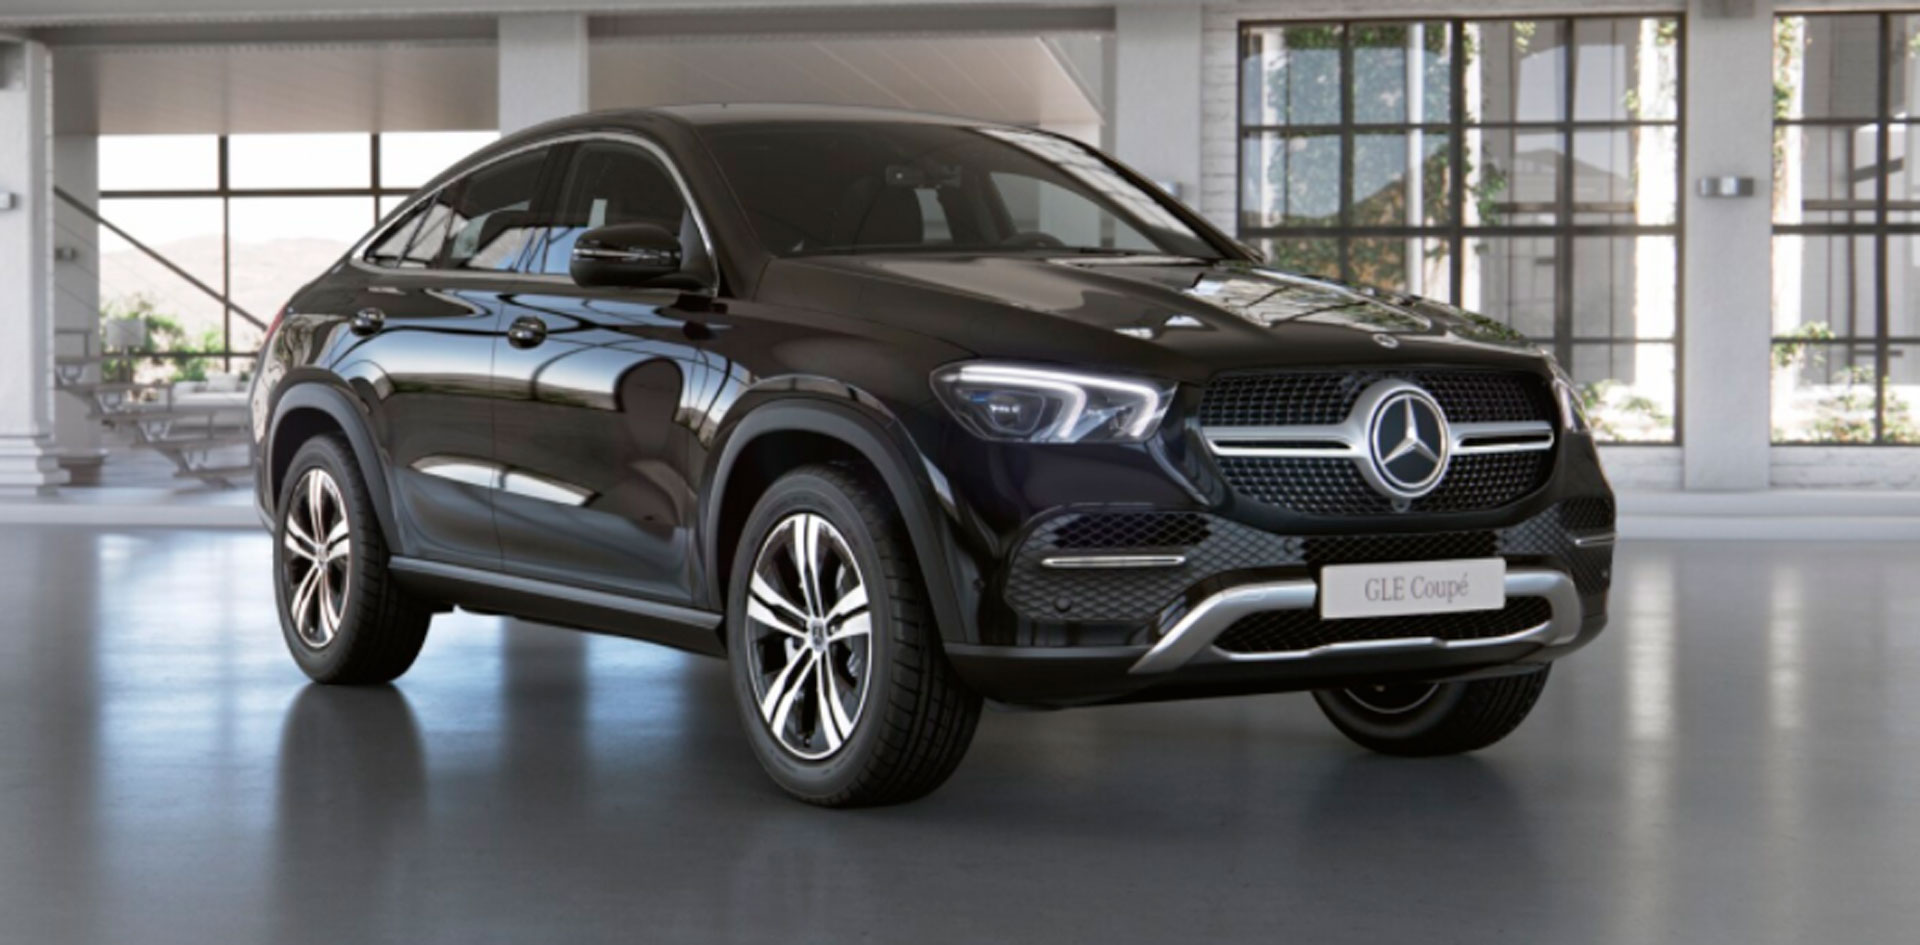 Mercedes-Benz GLE Coupe 0152600084